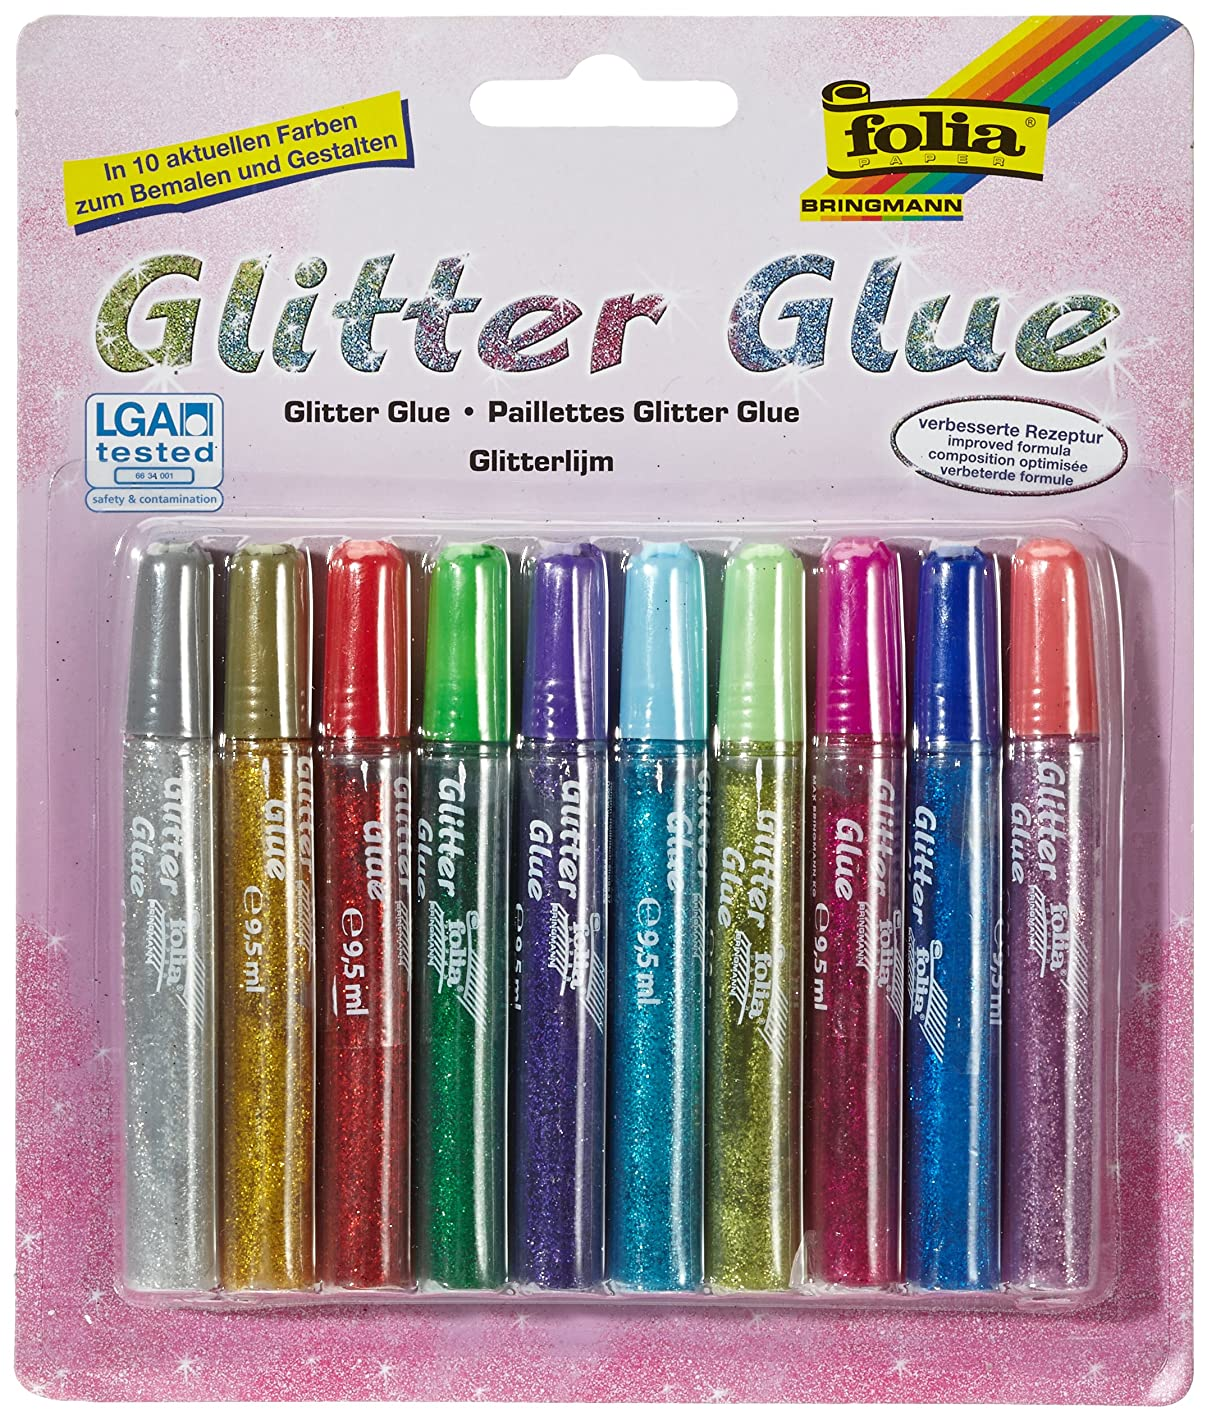 folia 574 - Glitter Glue, 10 Pens with 9.5ml Content Each, 10 Assorted Colours